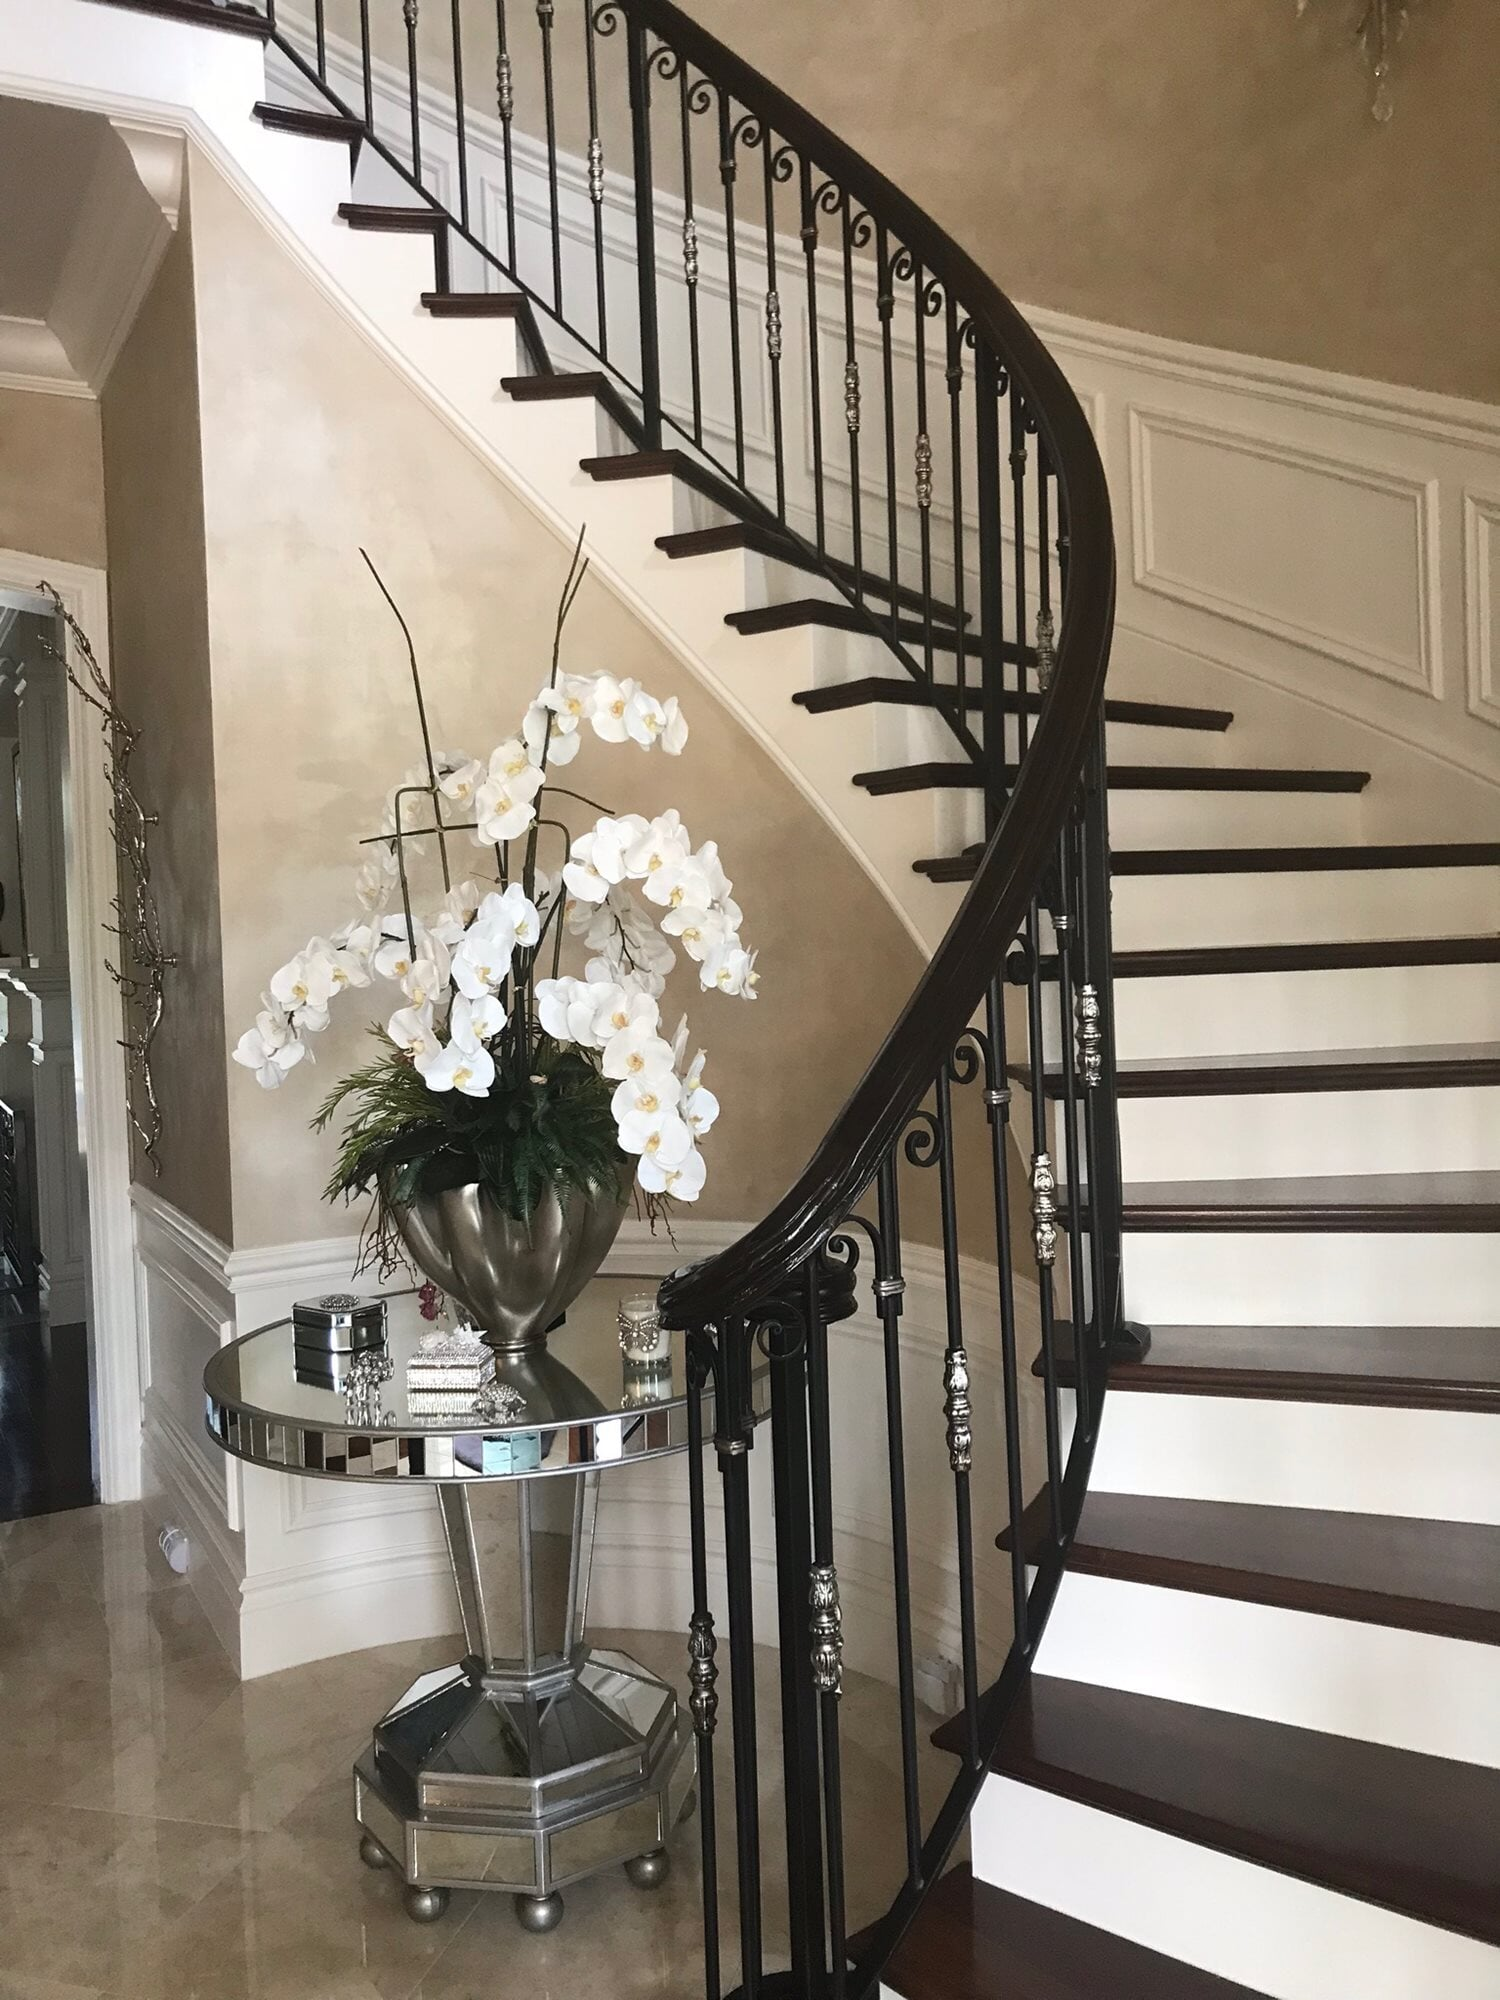 Custom stairway in Juno Beach, FL from Floors For You Kitchen & Bath